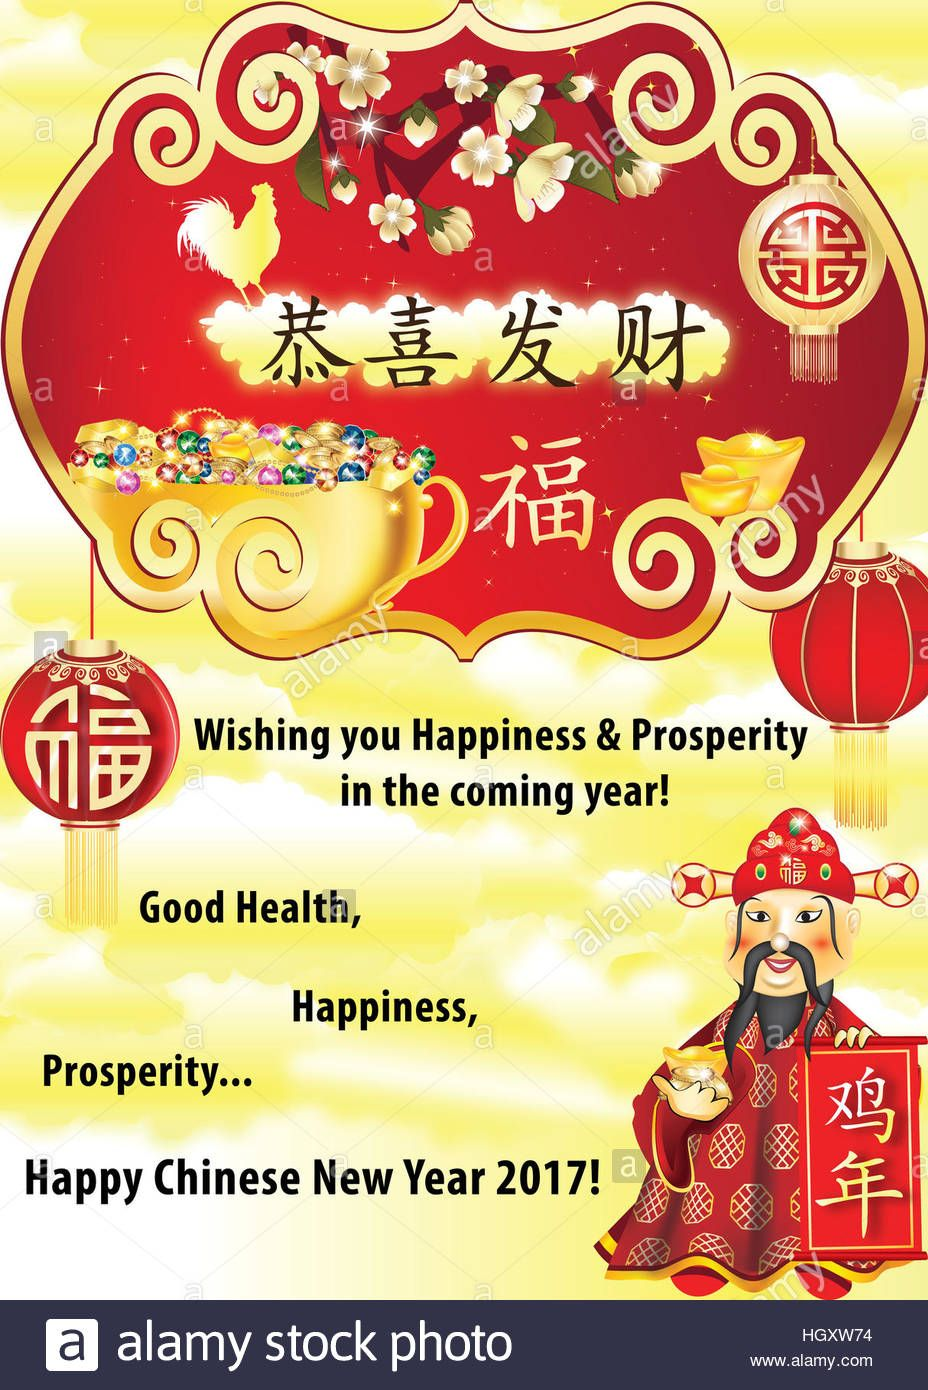 download this stock image printable chinese new year 2017 greeting card chinese text congratulations and prosperity gong xi fa cai good fortune